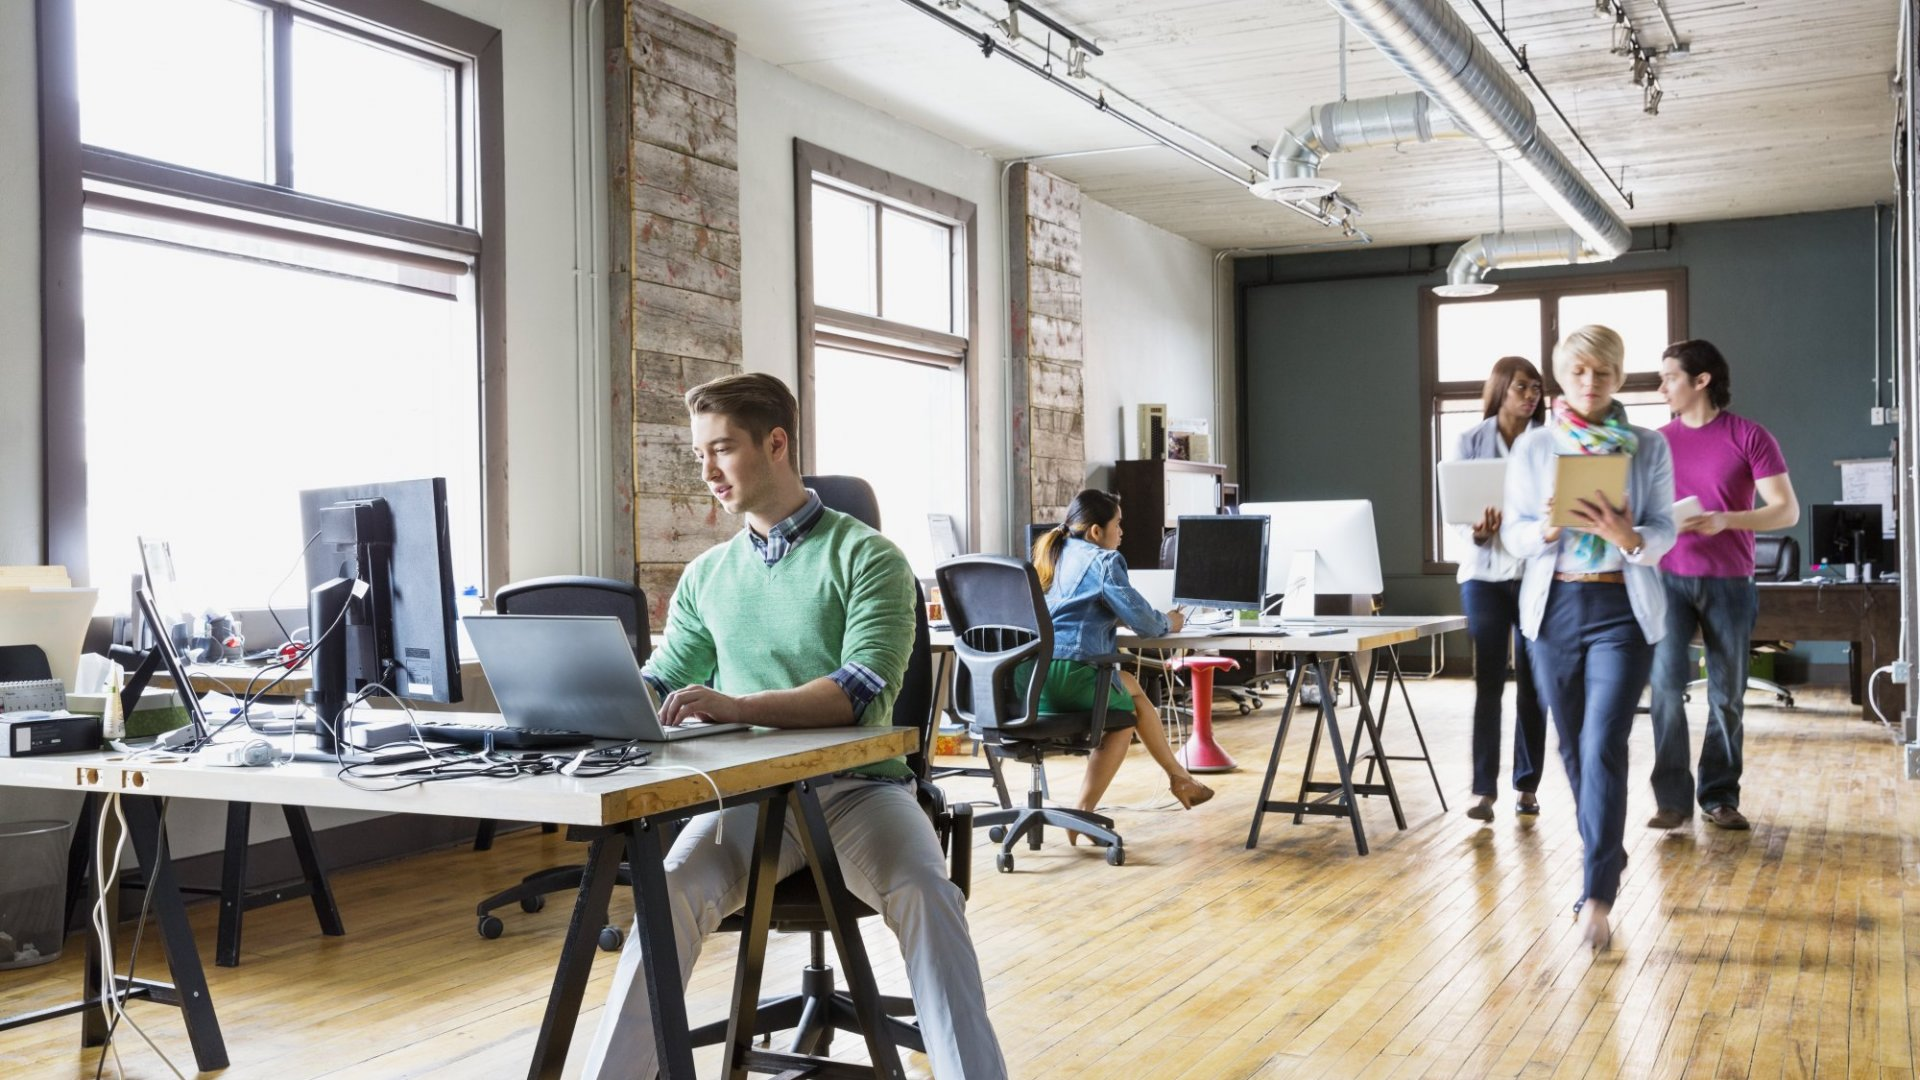 6. Make sure you don't end up with an awful landlord when renting an office space.